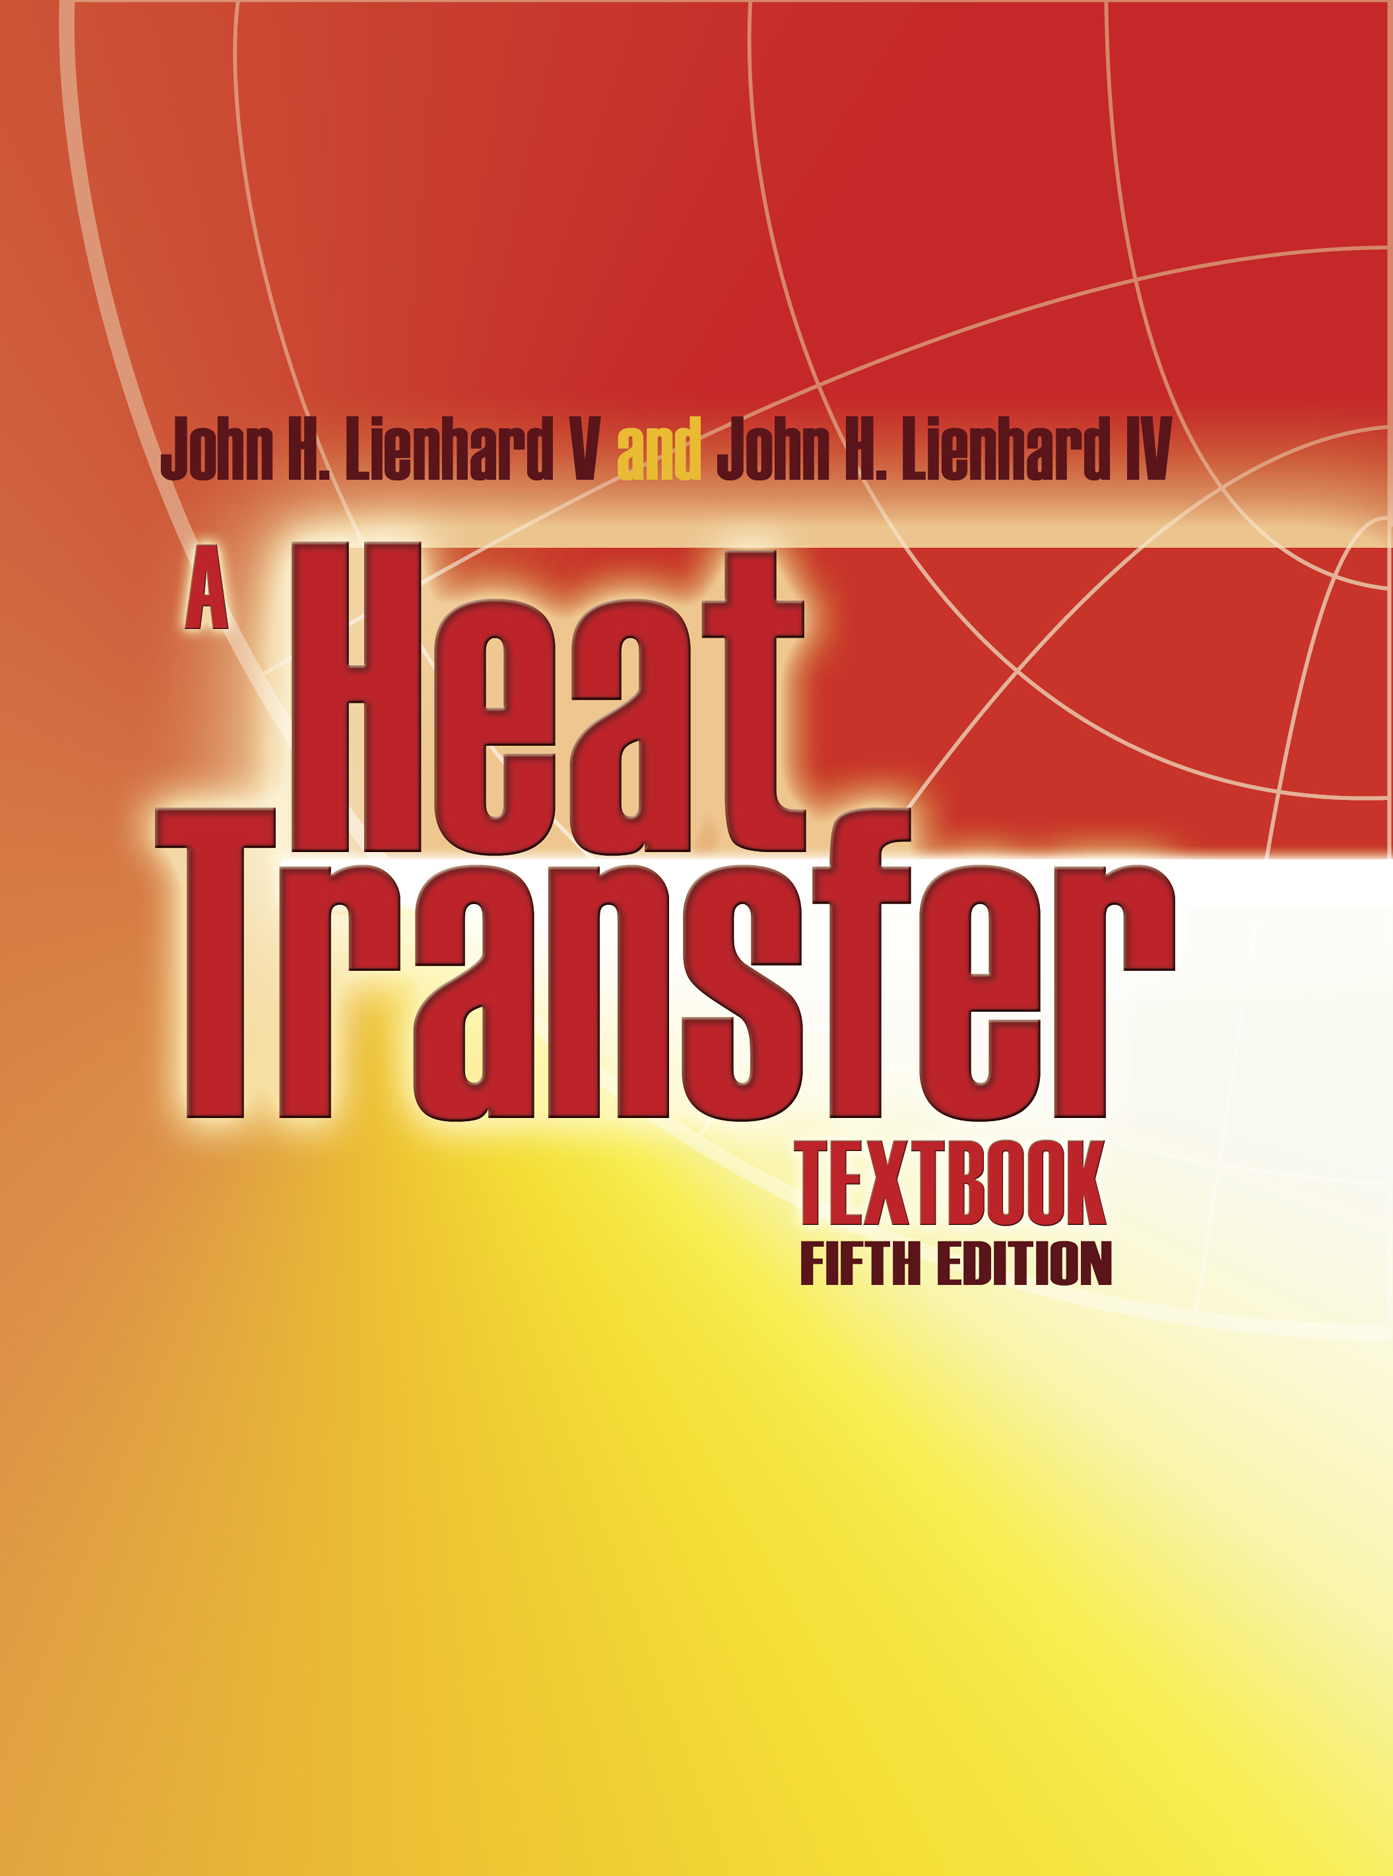 Cover of A Heat Transfer Textbook, 5th edition